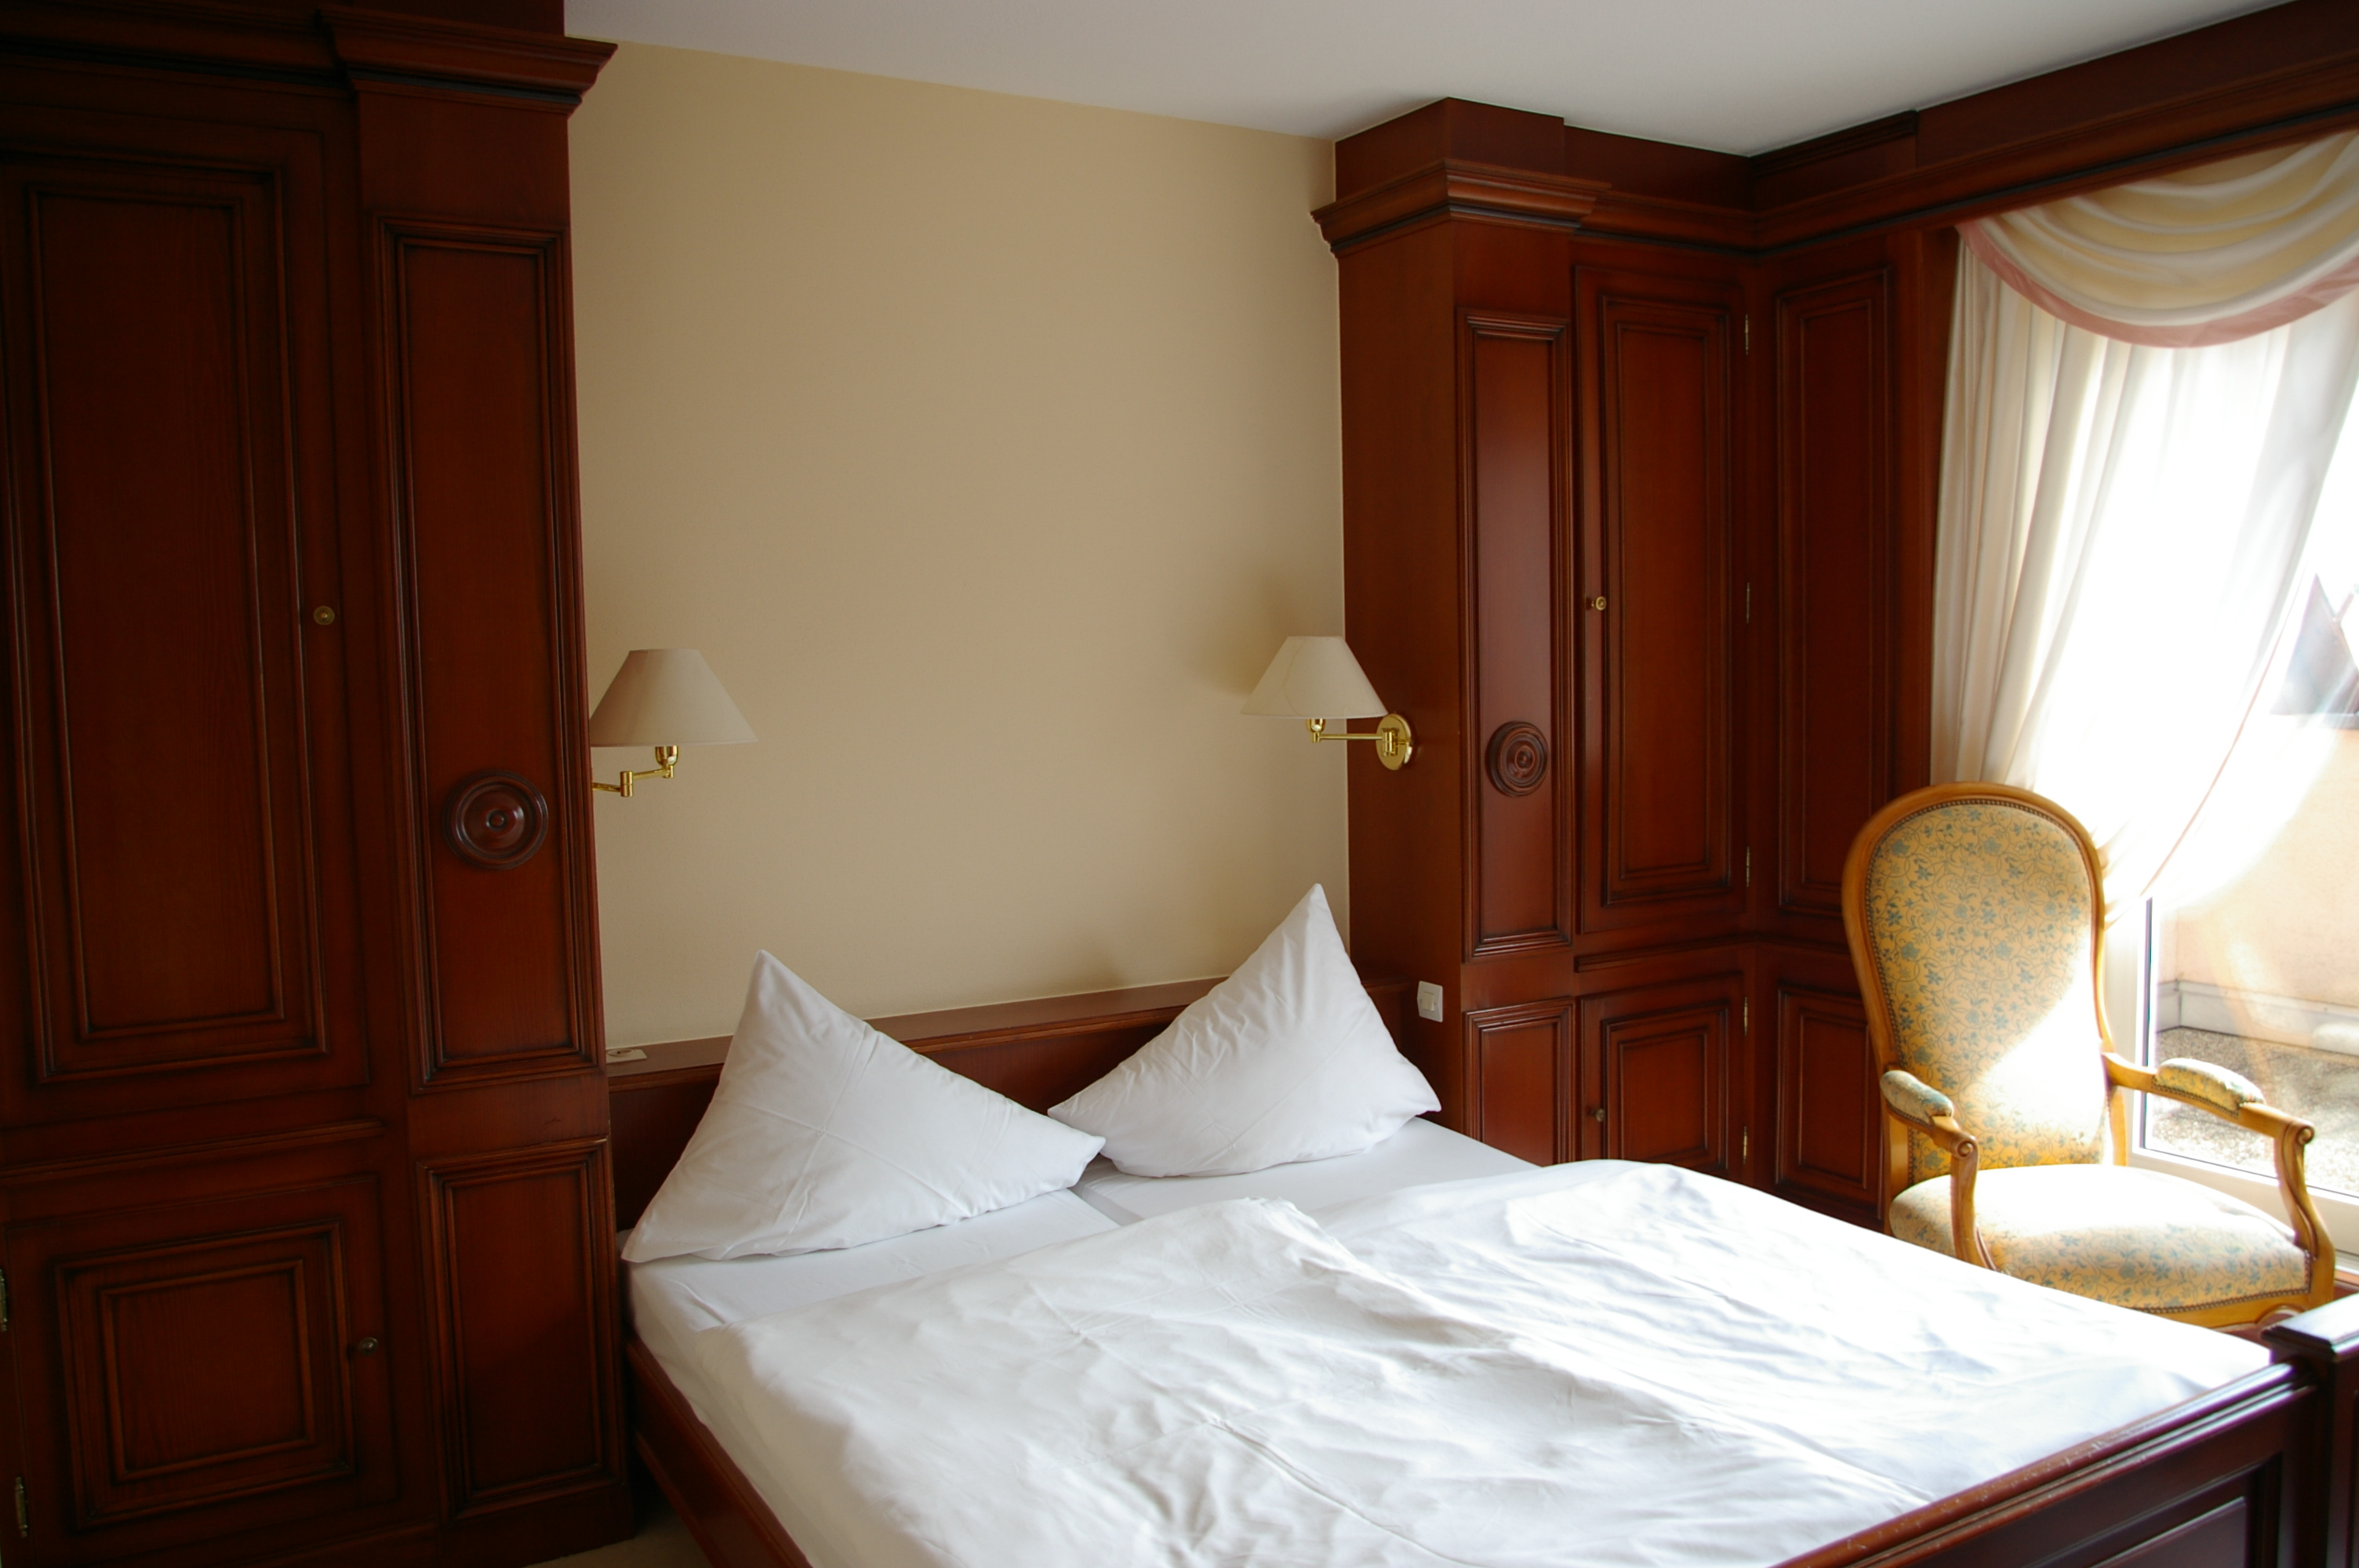 Hotel room, Bed, Bedroom, Chair, Dwellings, HQ Photo